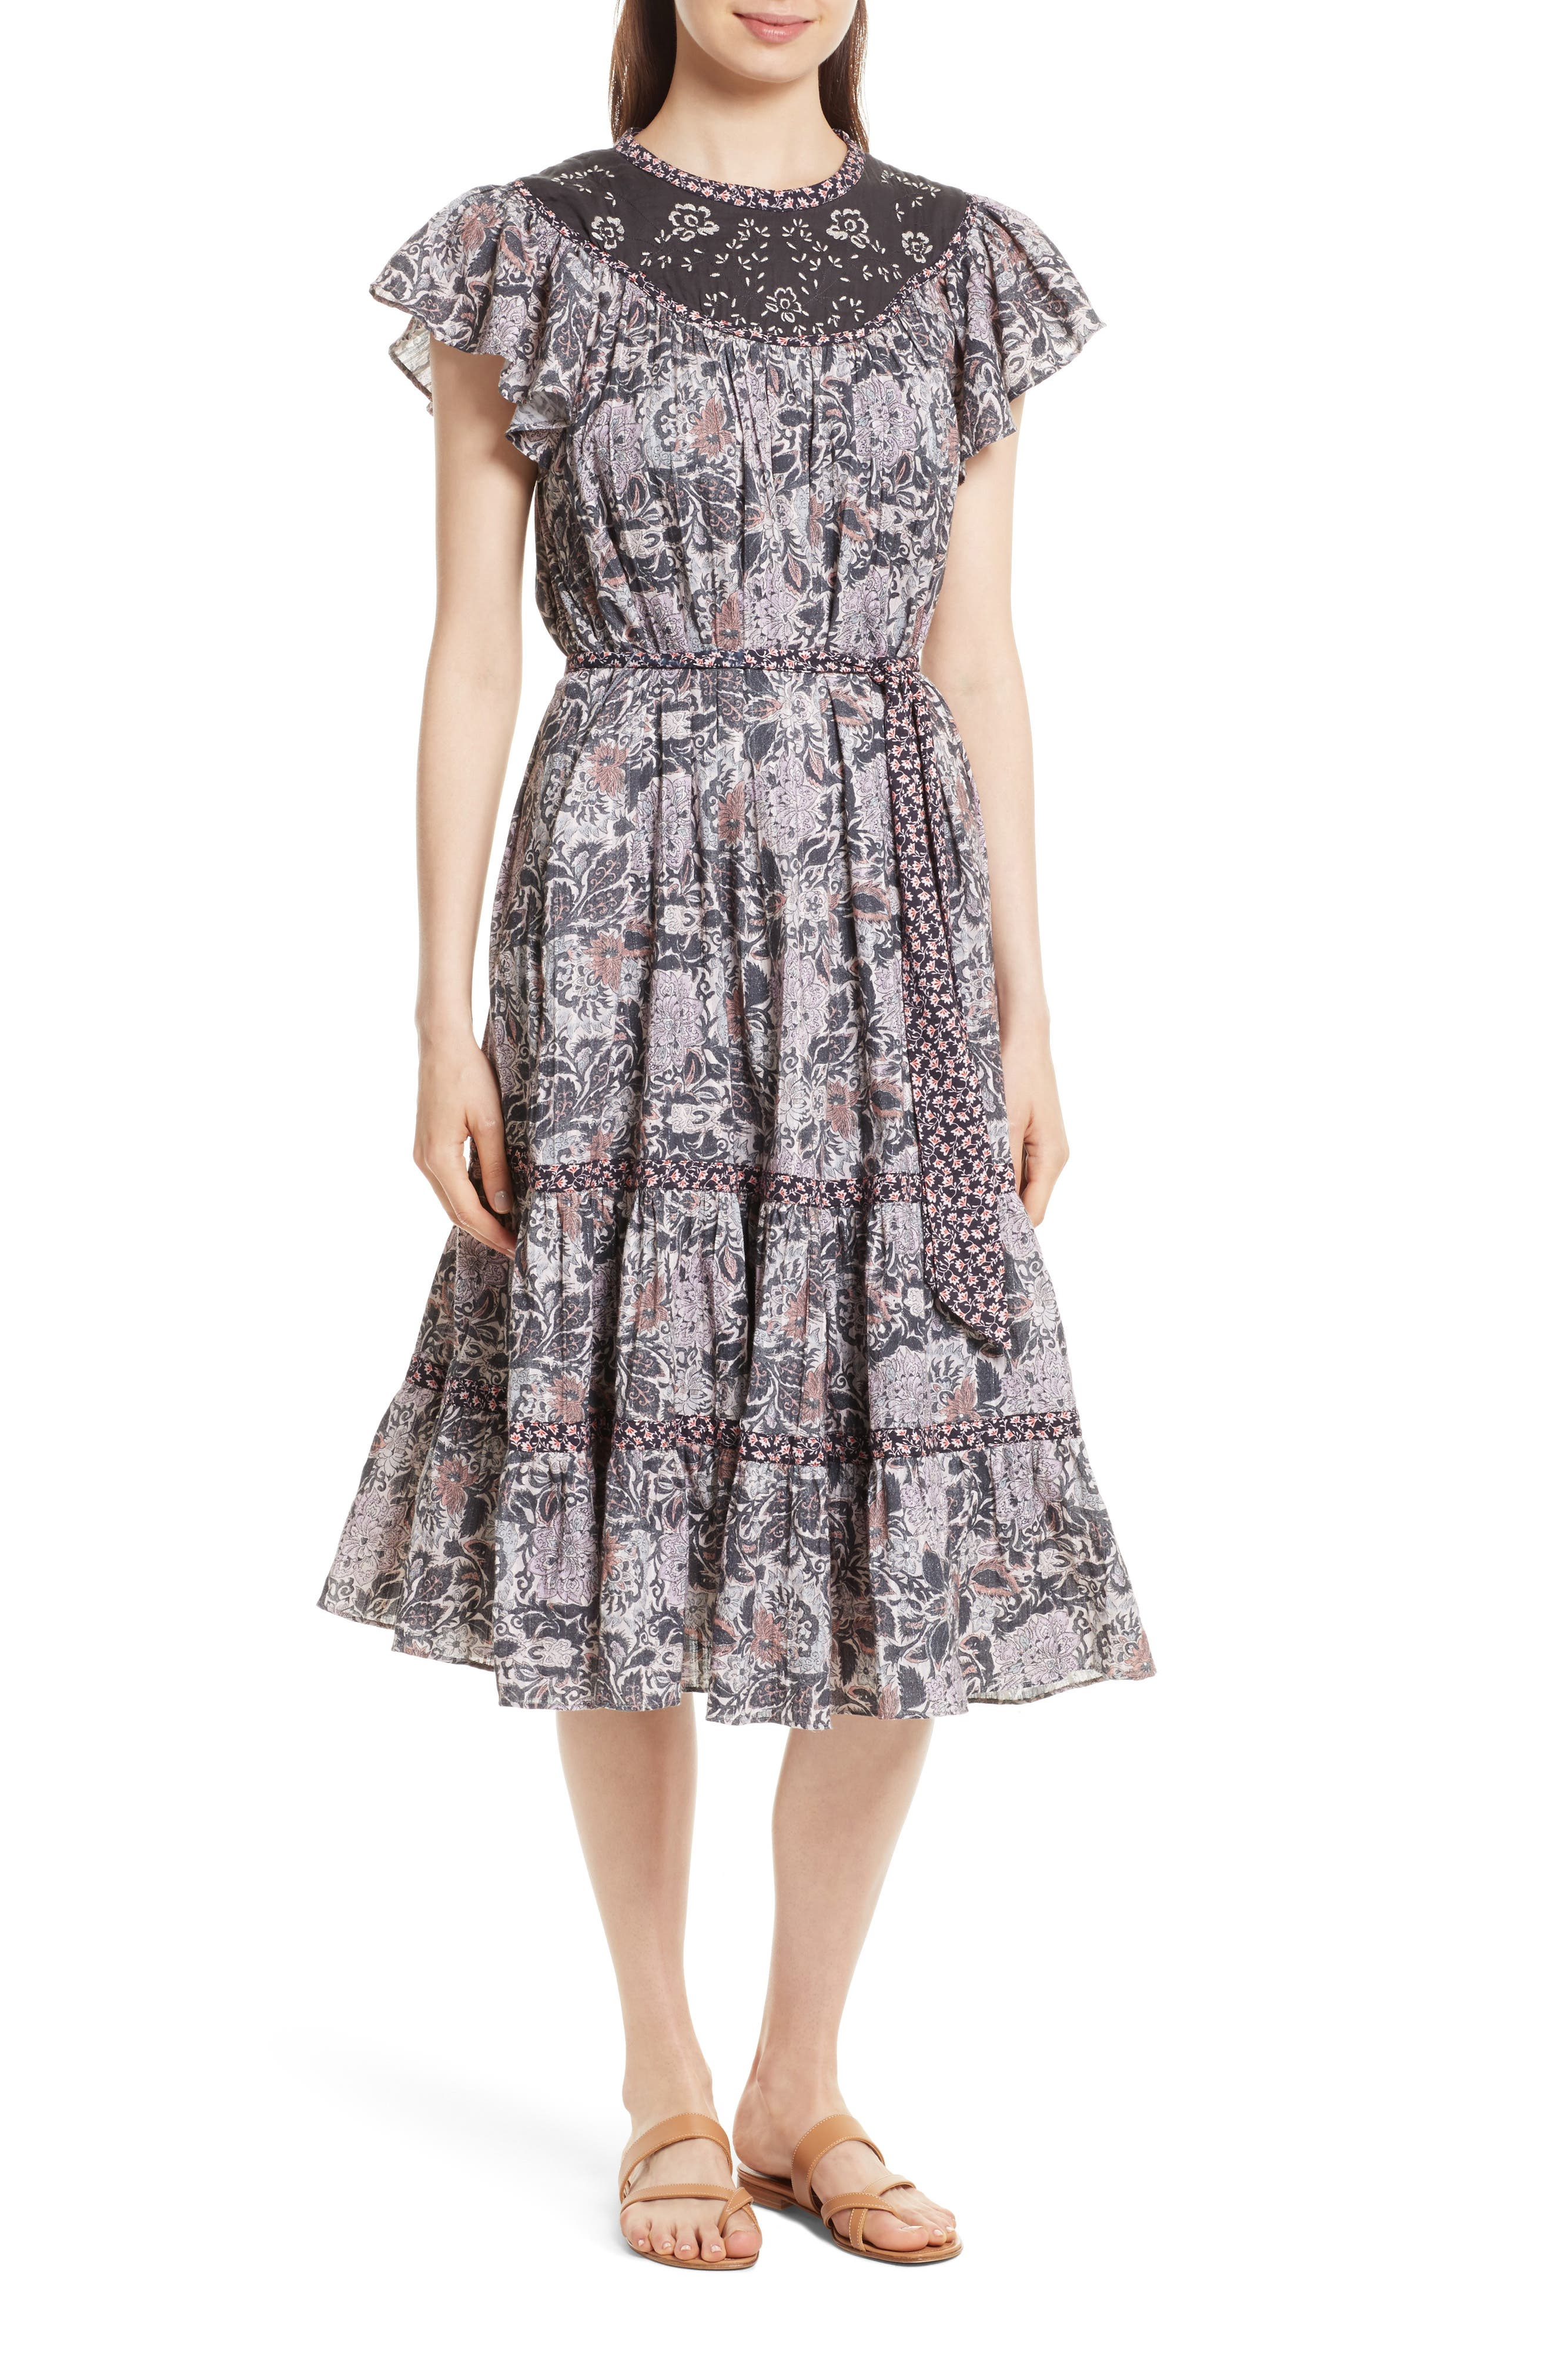 La Vie Rebecca Taylor Indochine Embroidered Floral Dress